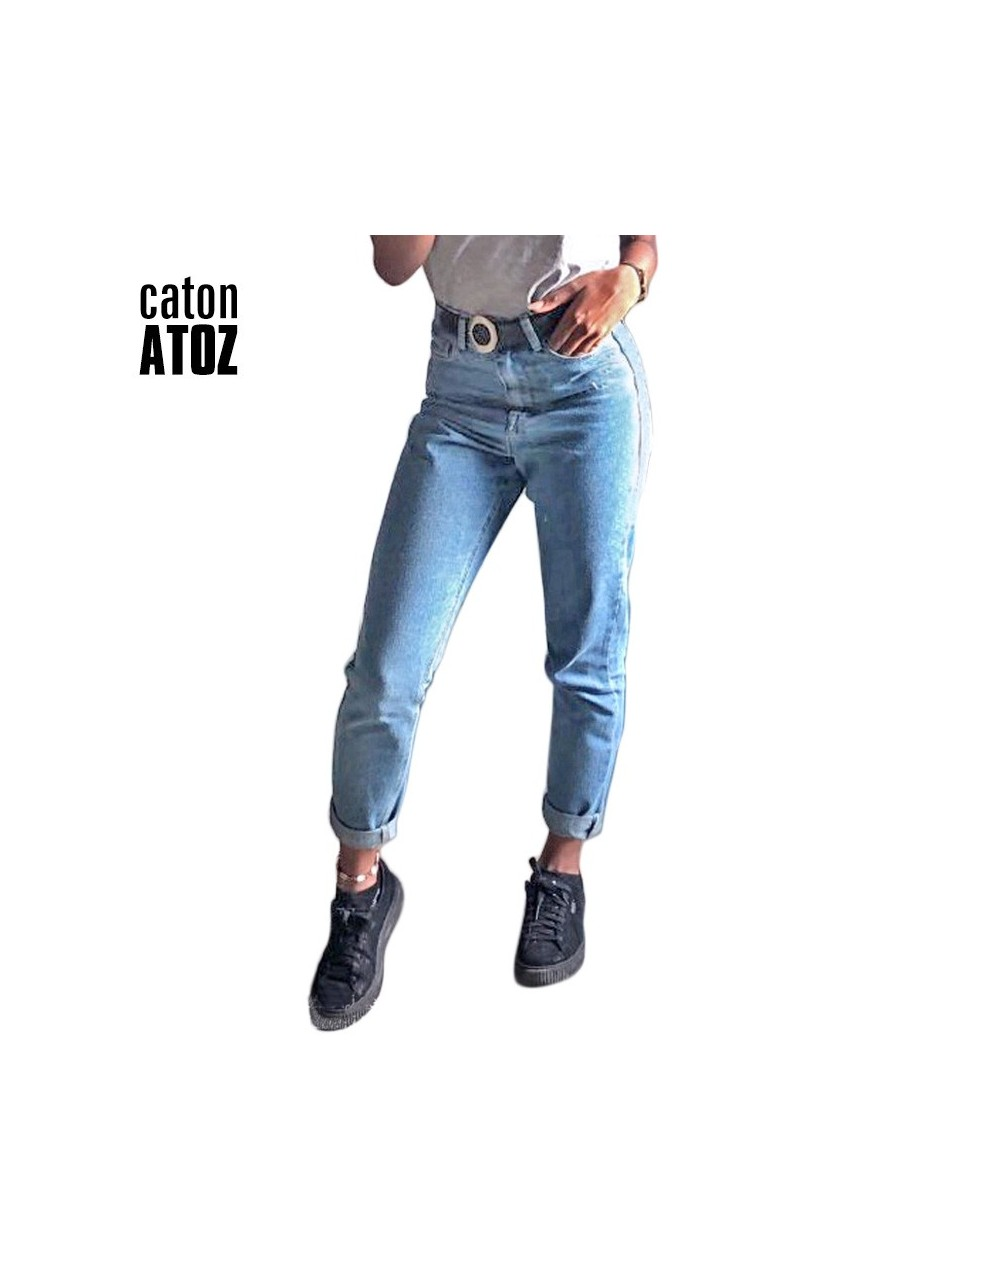 catonATOZ 1886 New Arrivals Women High Waisted Jeans OL Denim Pants Trousers Mom Jeans For Woman - - 4L3949826252